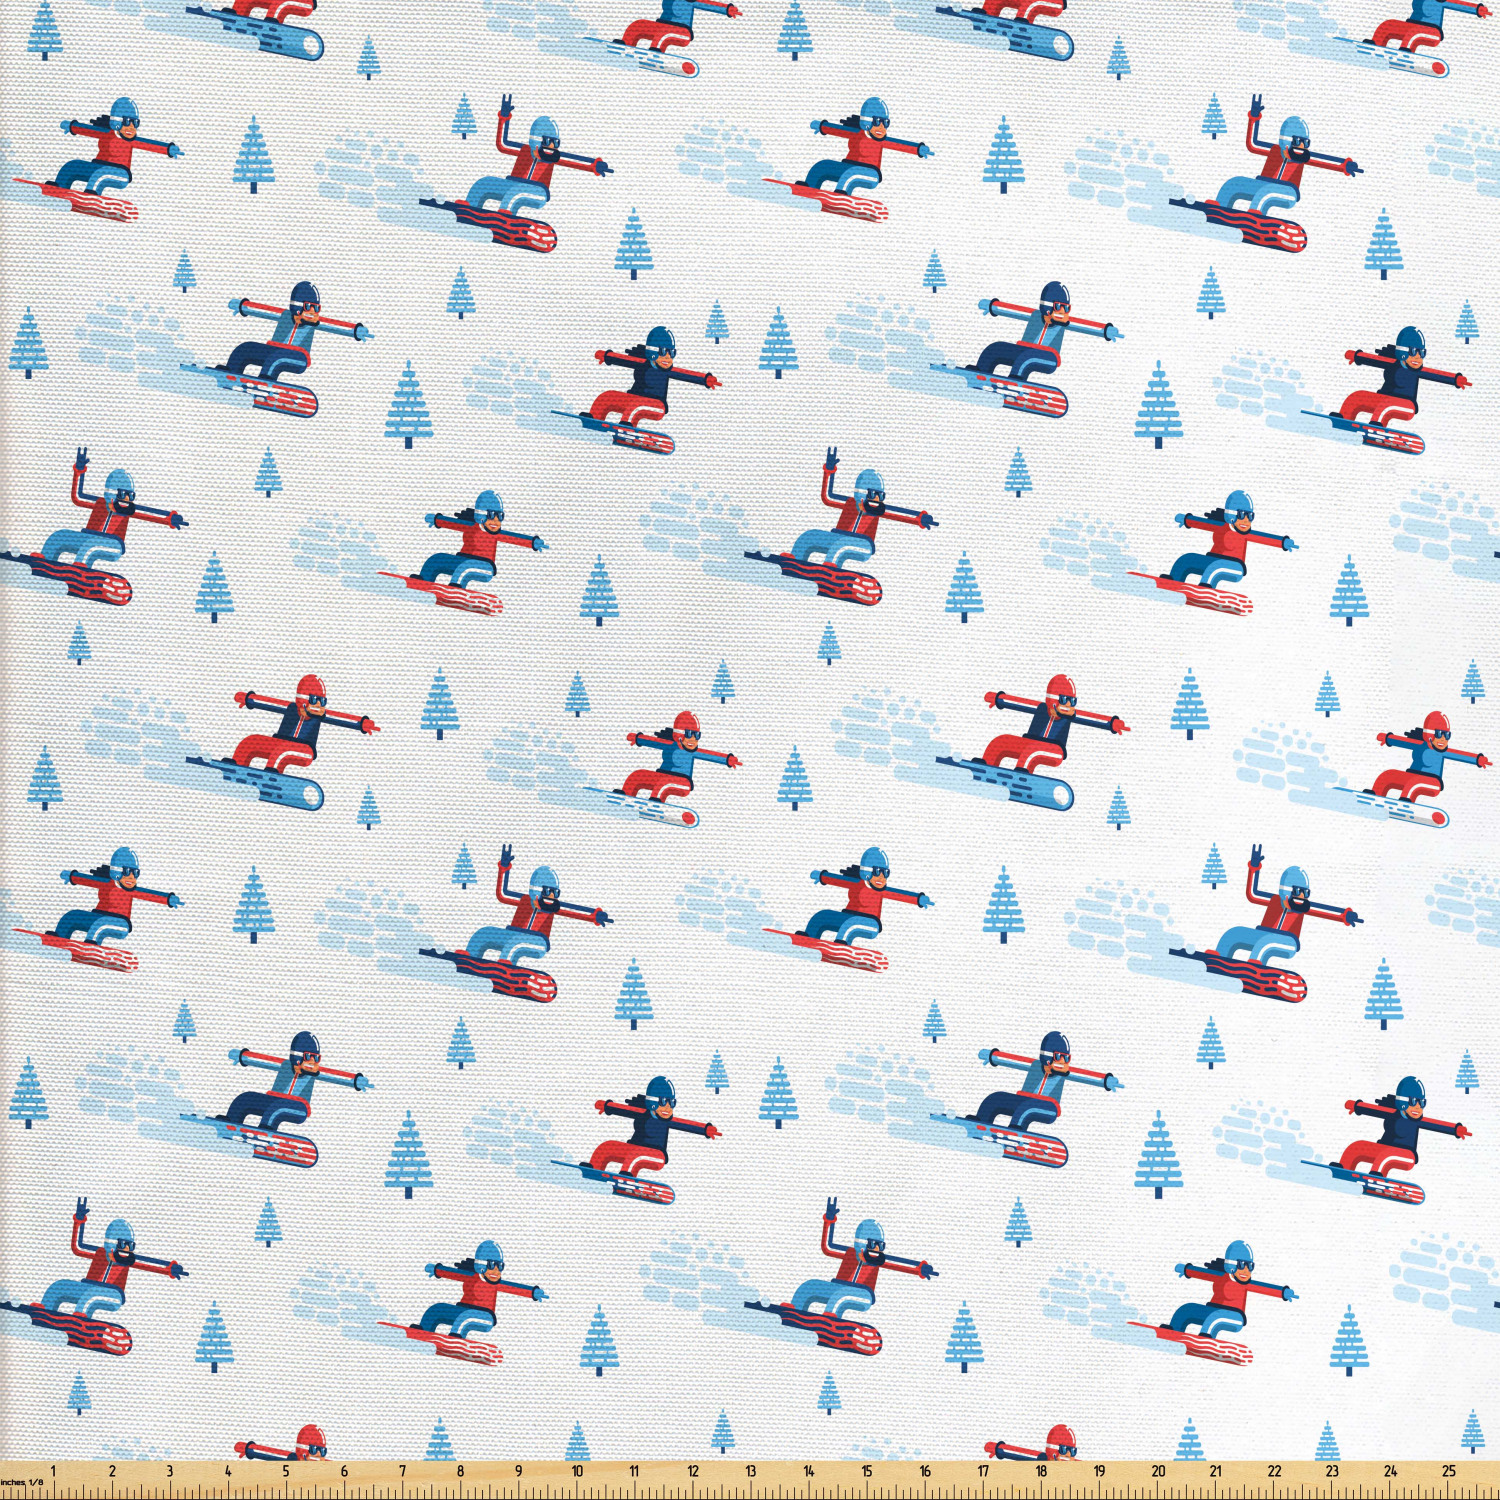 Ski Pattern Fabric By The Yard Snowboarder Men And Women